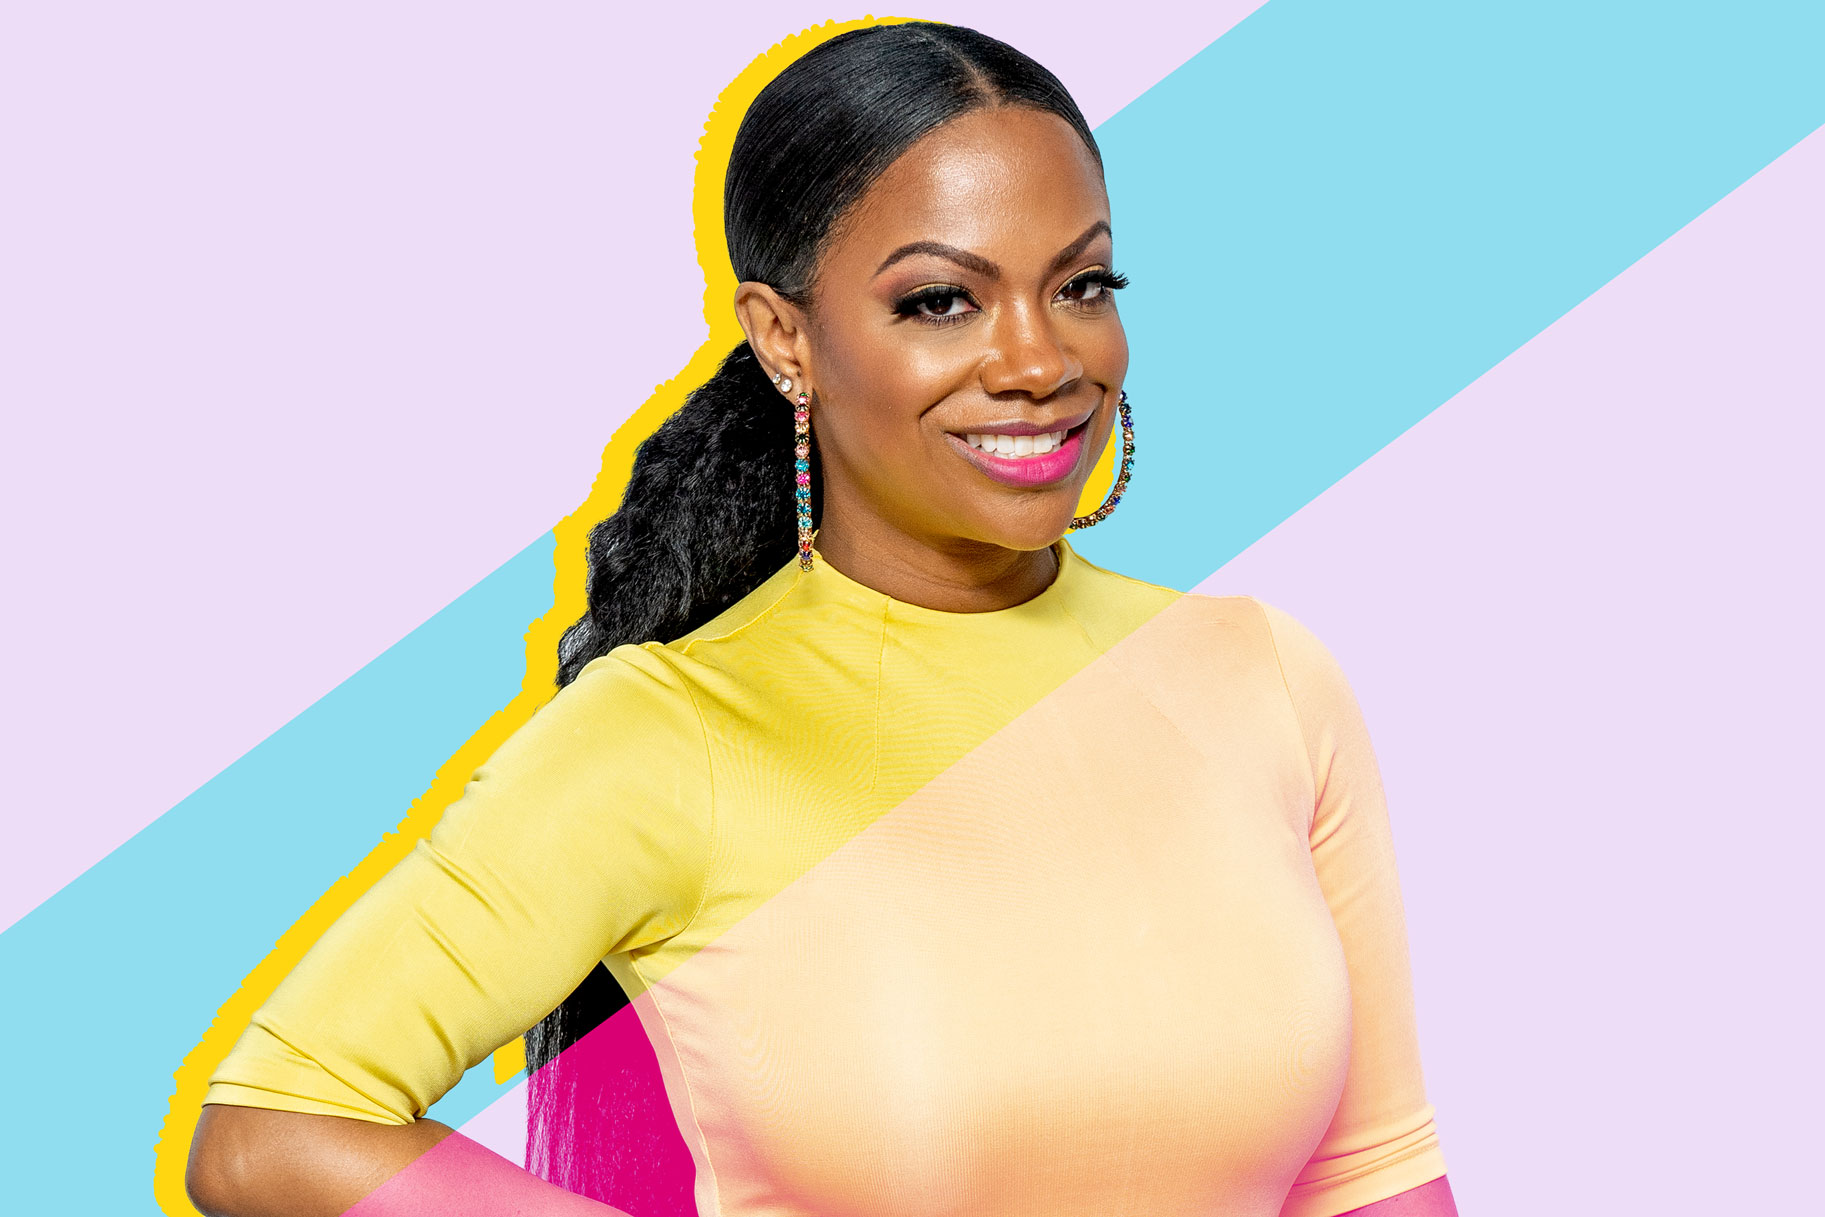 kandi-burruss-is-proud-to-announce-fans-that-the-first-week-of-her-dungeon-tour-went-amazing-check-out-her-life-update-in-the-video